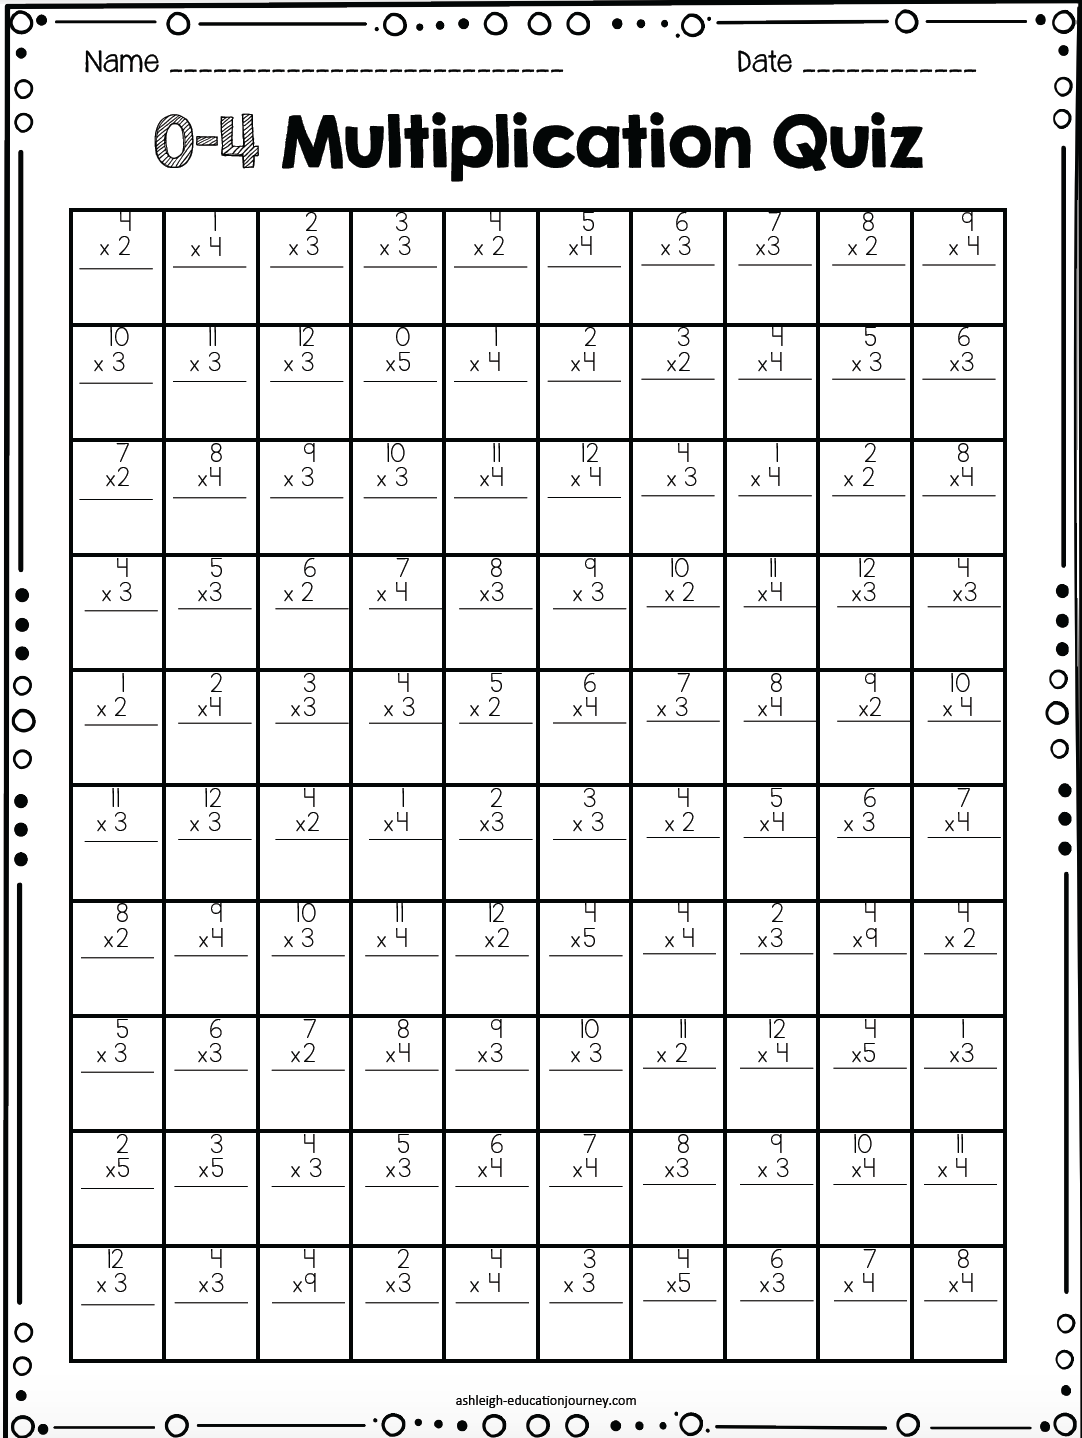 Free Multiplication Timed Test 100 Question And 20 Tests Printable